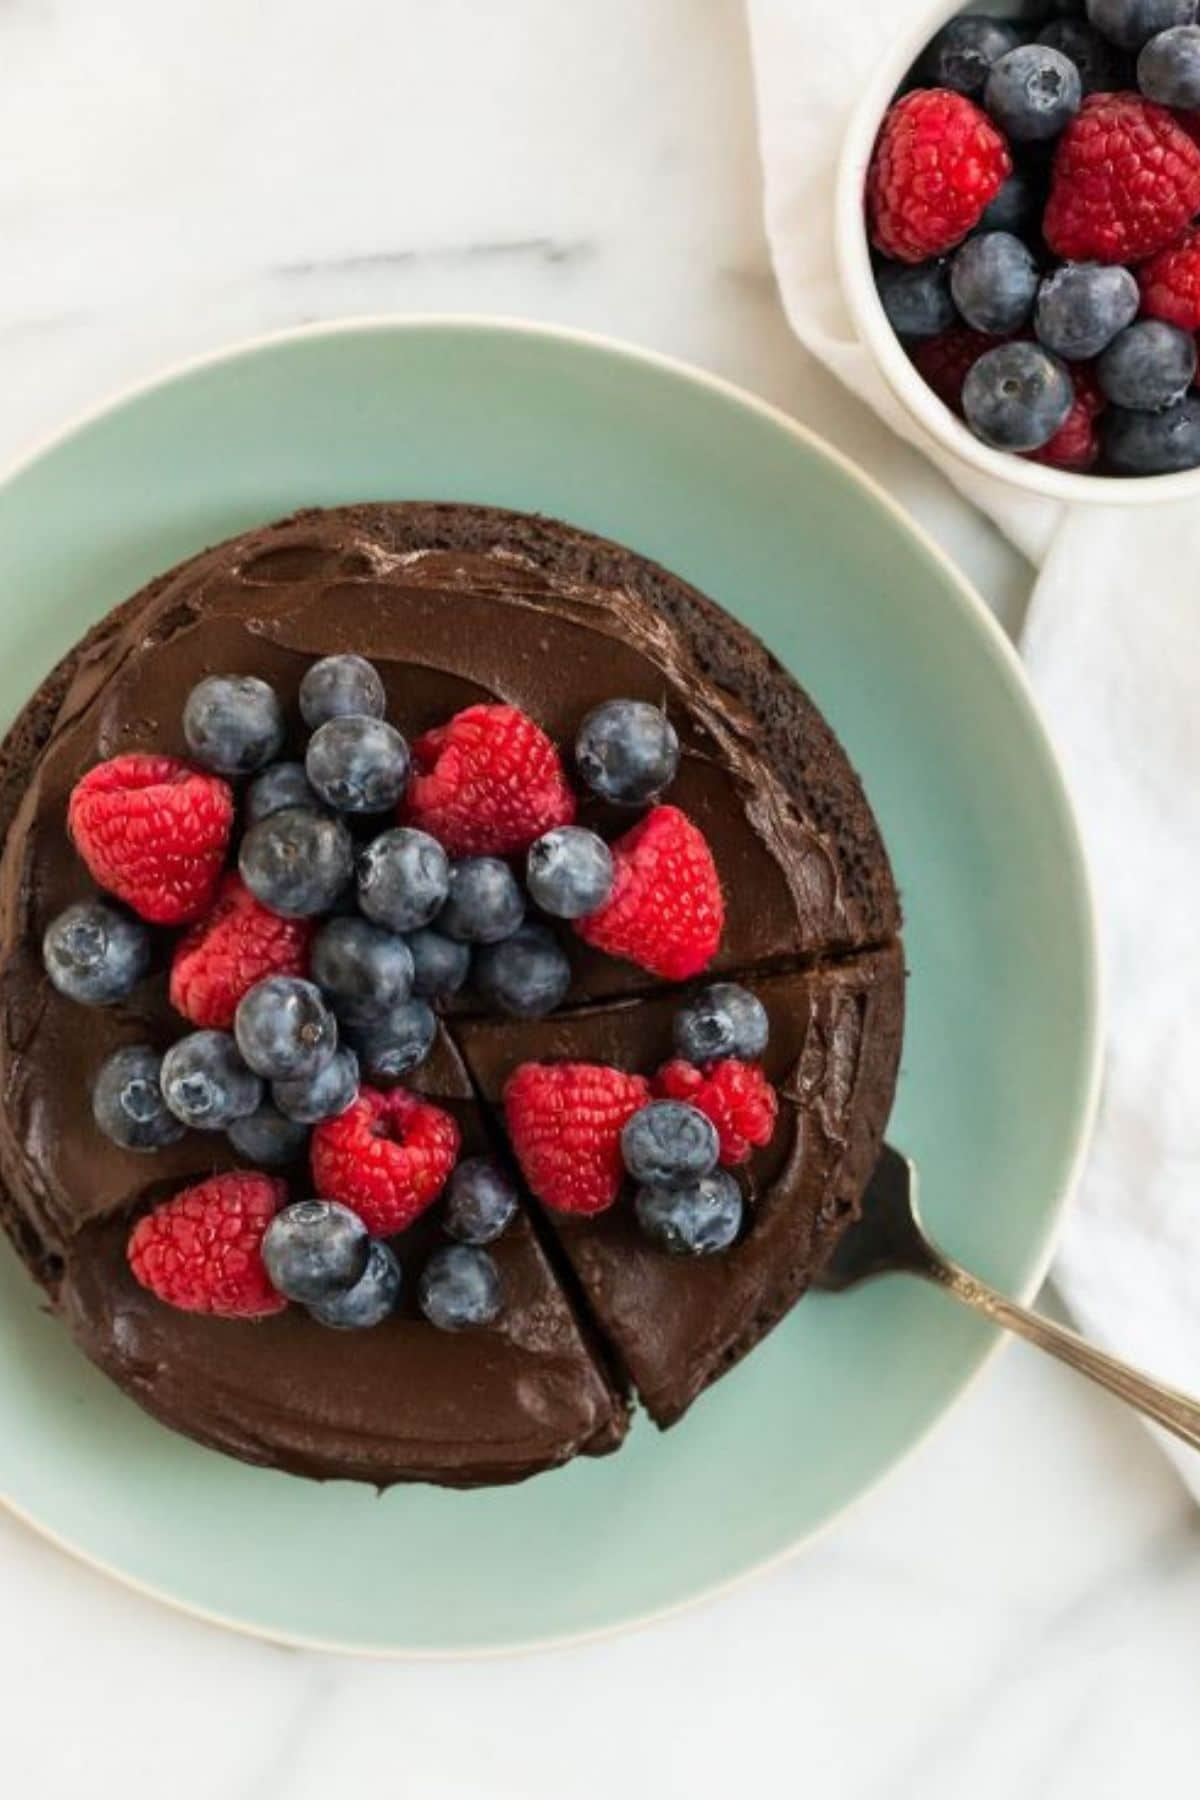 Chocolate cake on teal plate with blueberries and strawberries